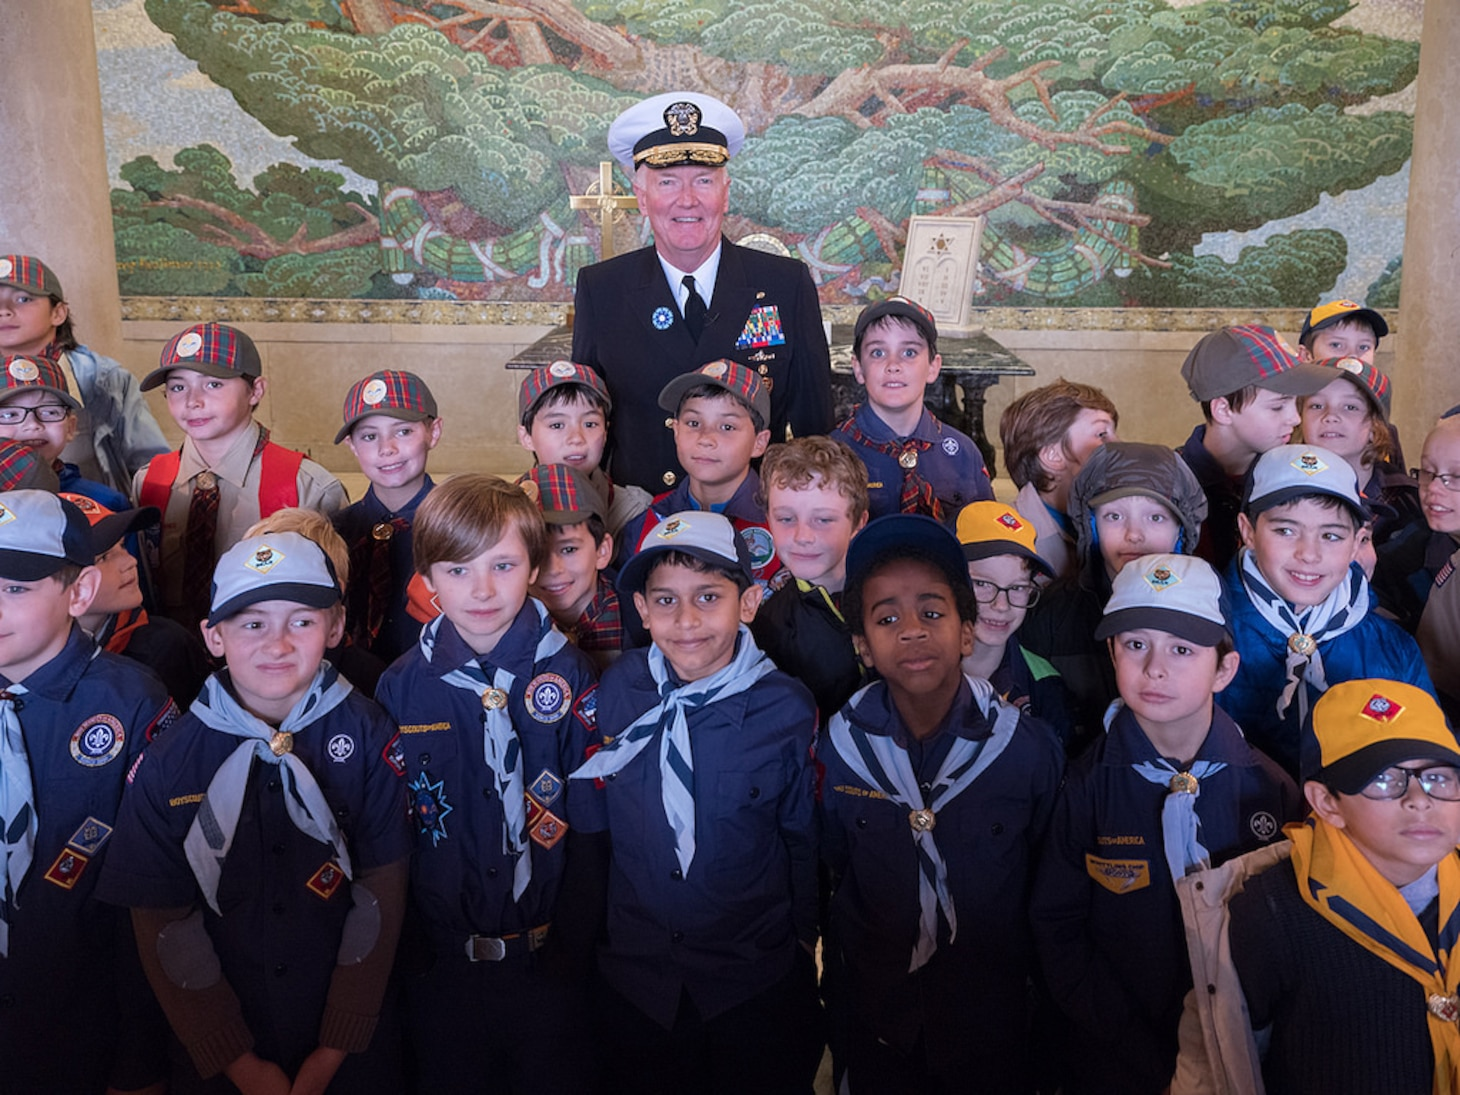 Adm. James Foggo III, commander, U.S. Naval Forces Europe-Africa, poses for a photo with American and French Boy and Girl Scouts during a ceremony at Suresnes American Cemetery celebrating Armistice and Veterans Day Nov. 11, 2017.